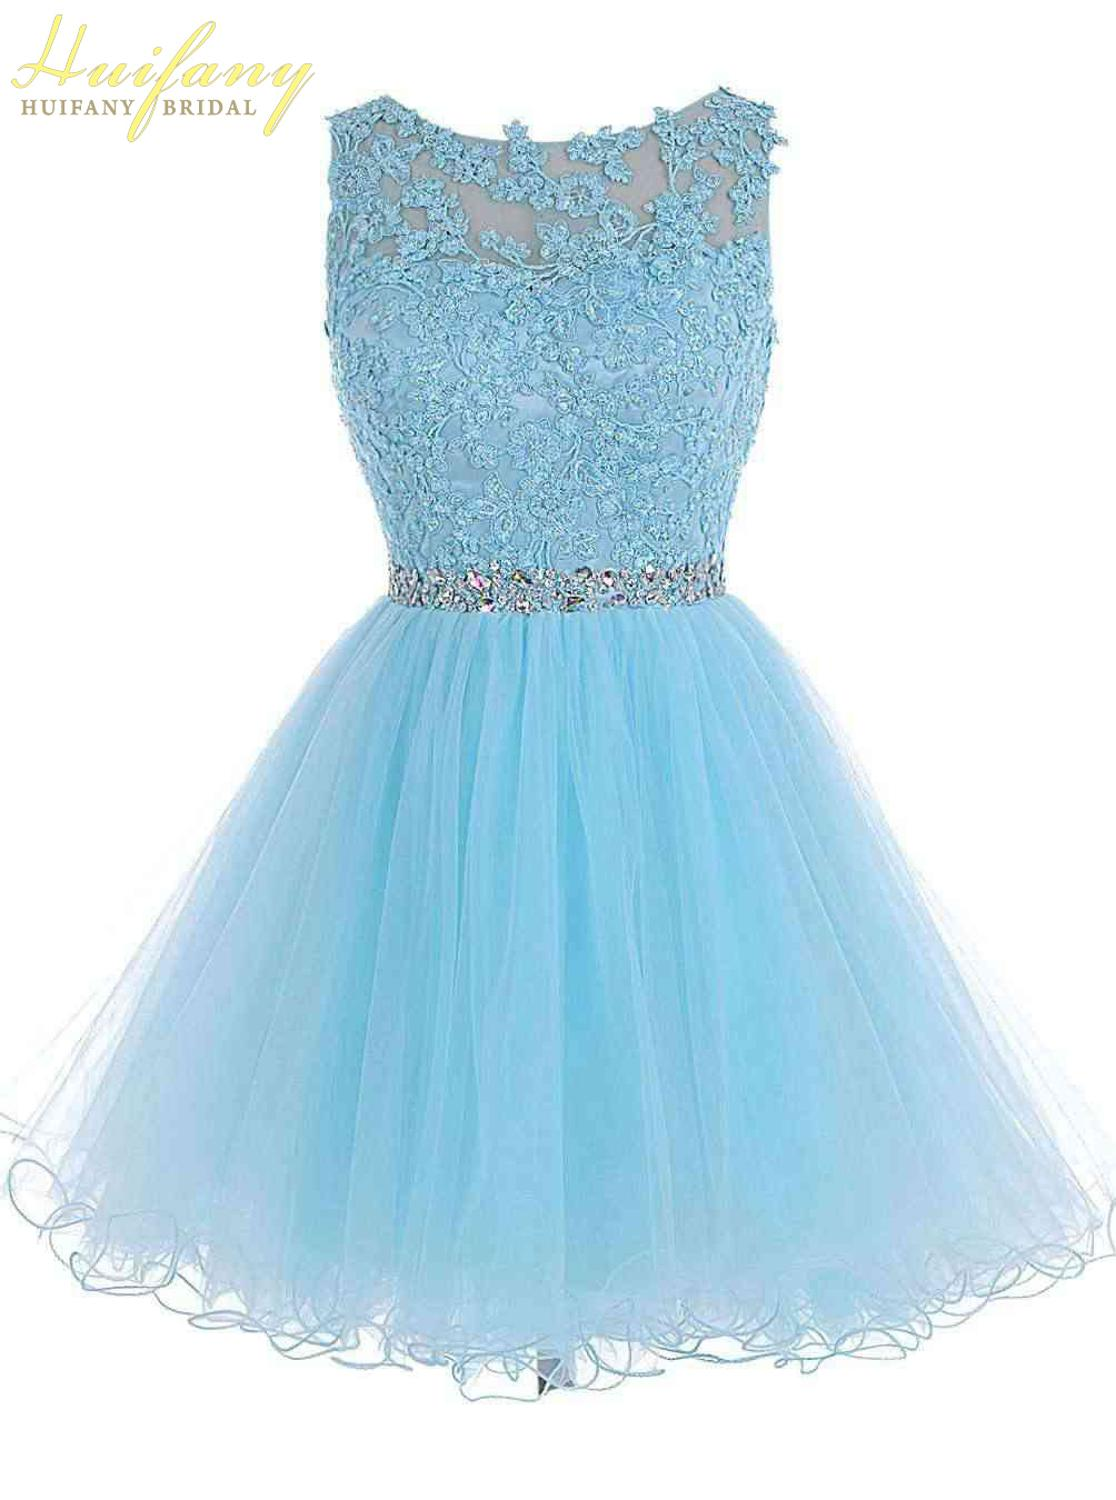 Lace Applique Beaded Backless Homecoming Dress 2019 Cheap Scoop A-Line Evening Short Party Tulle Graduation Dress Knee Length